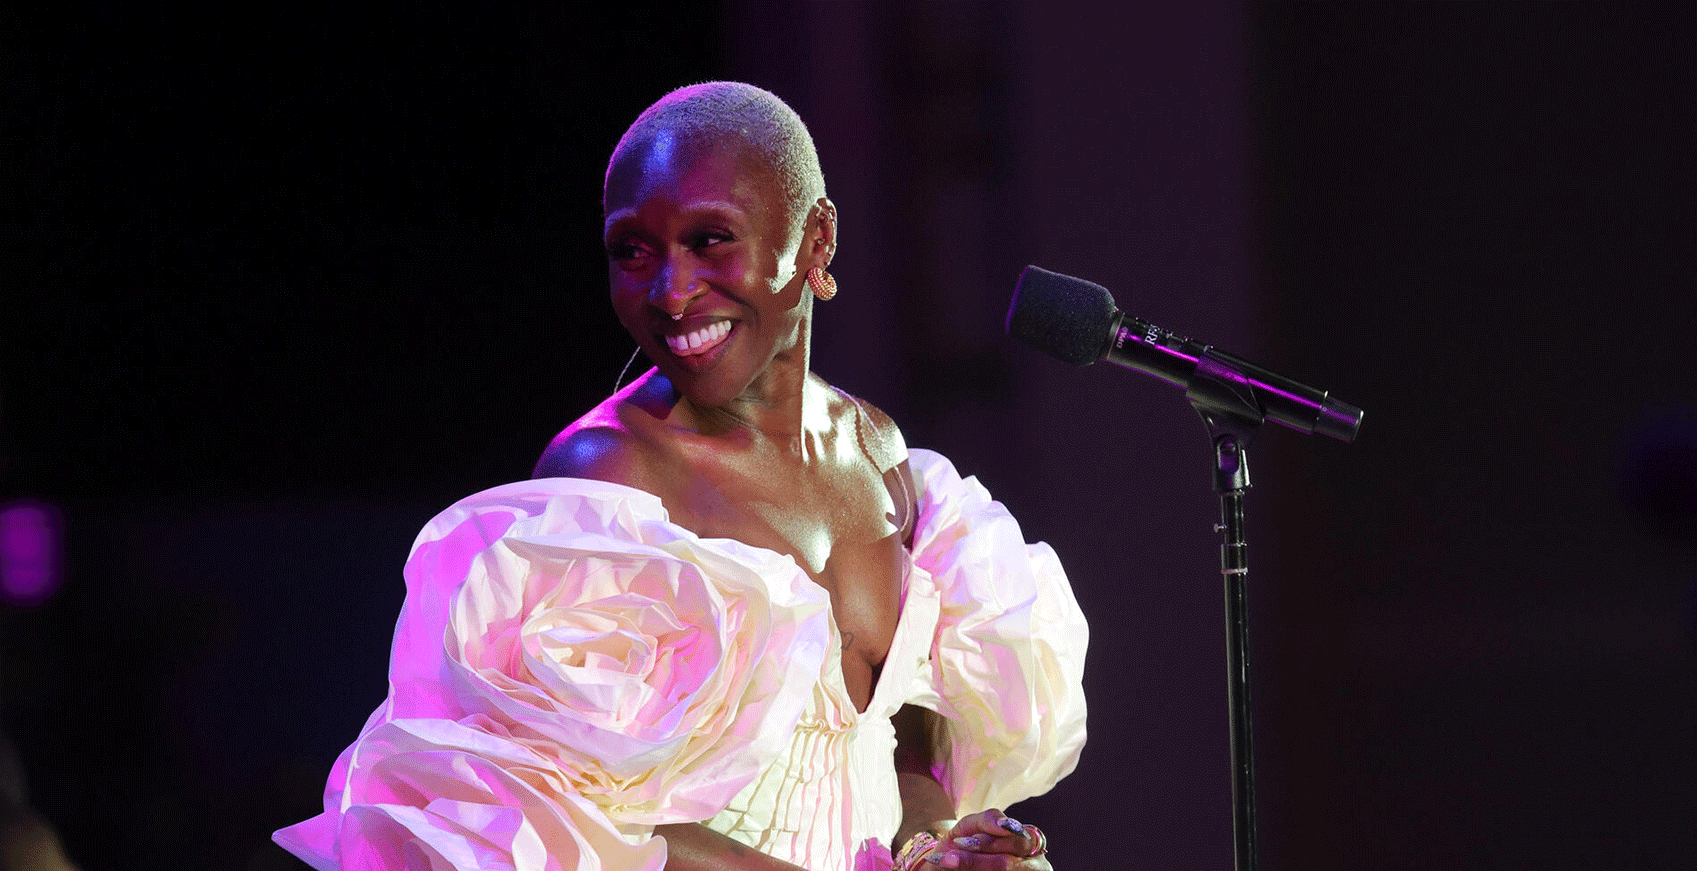 Cynthia Erivo, vocalist and special guest